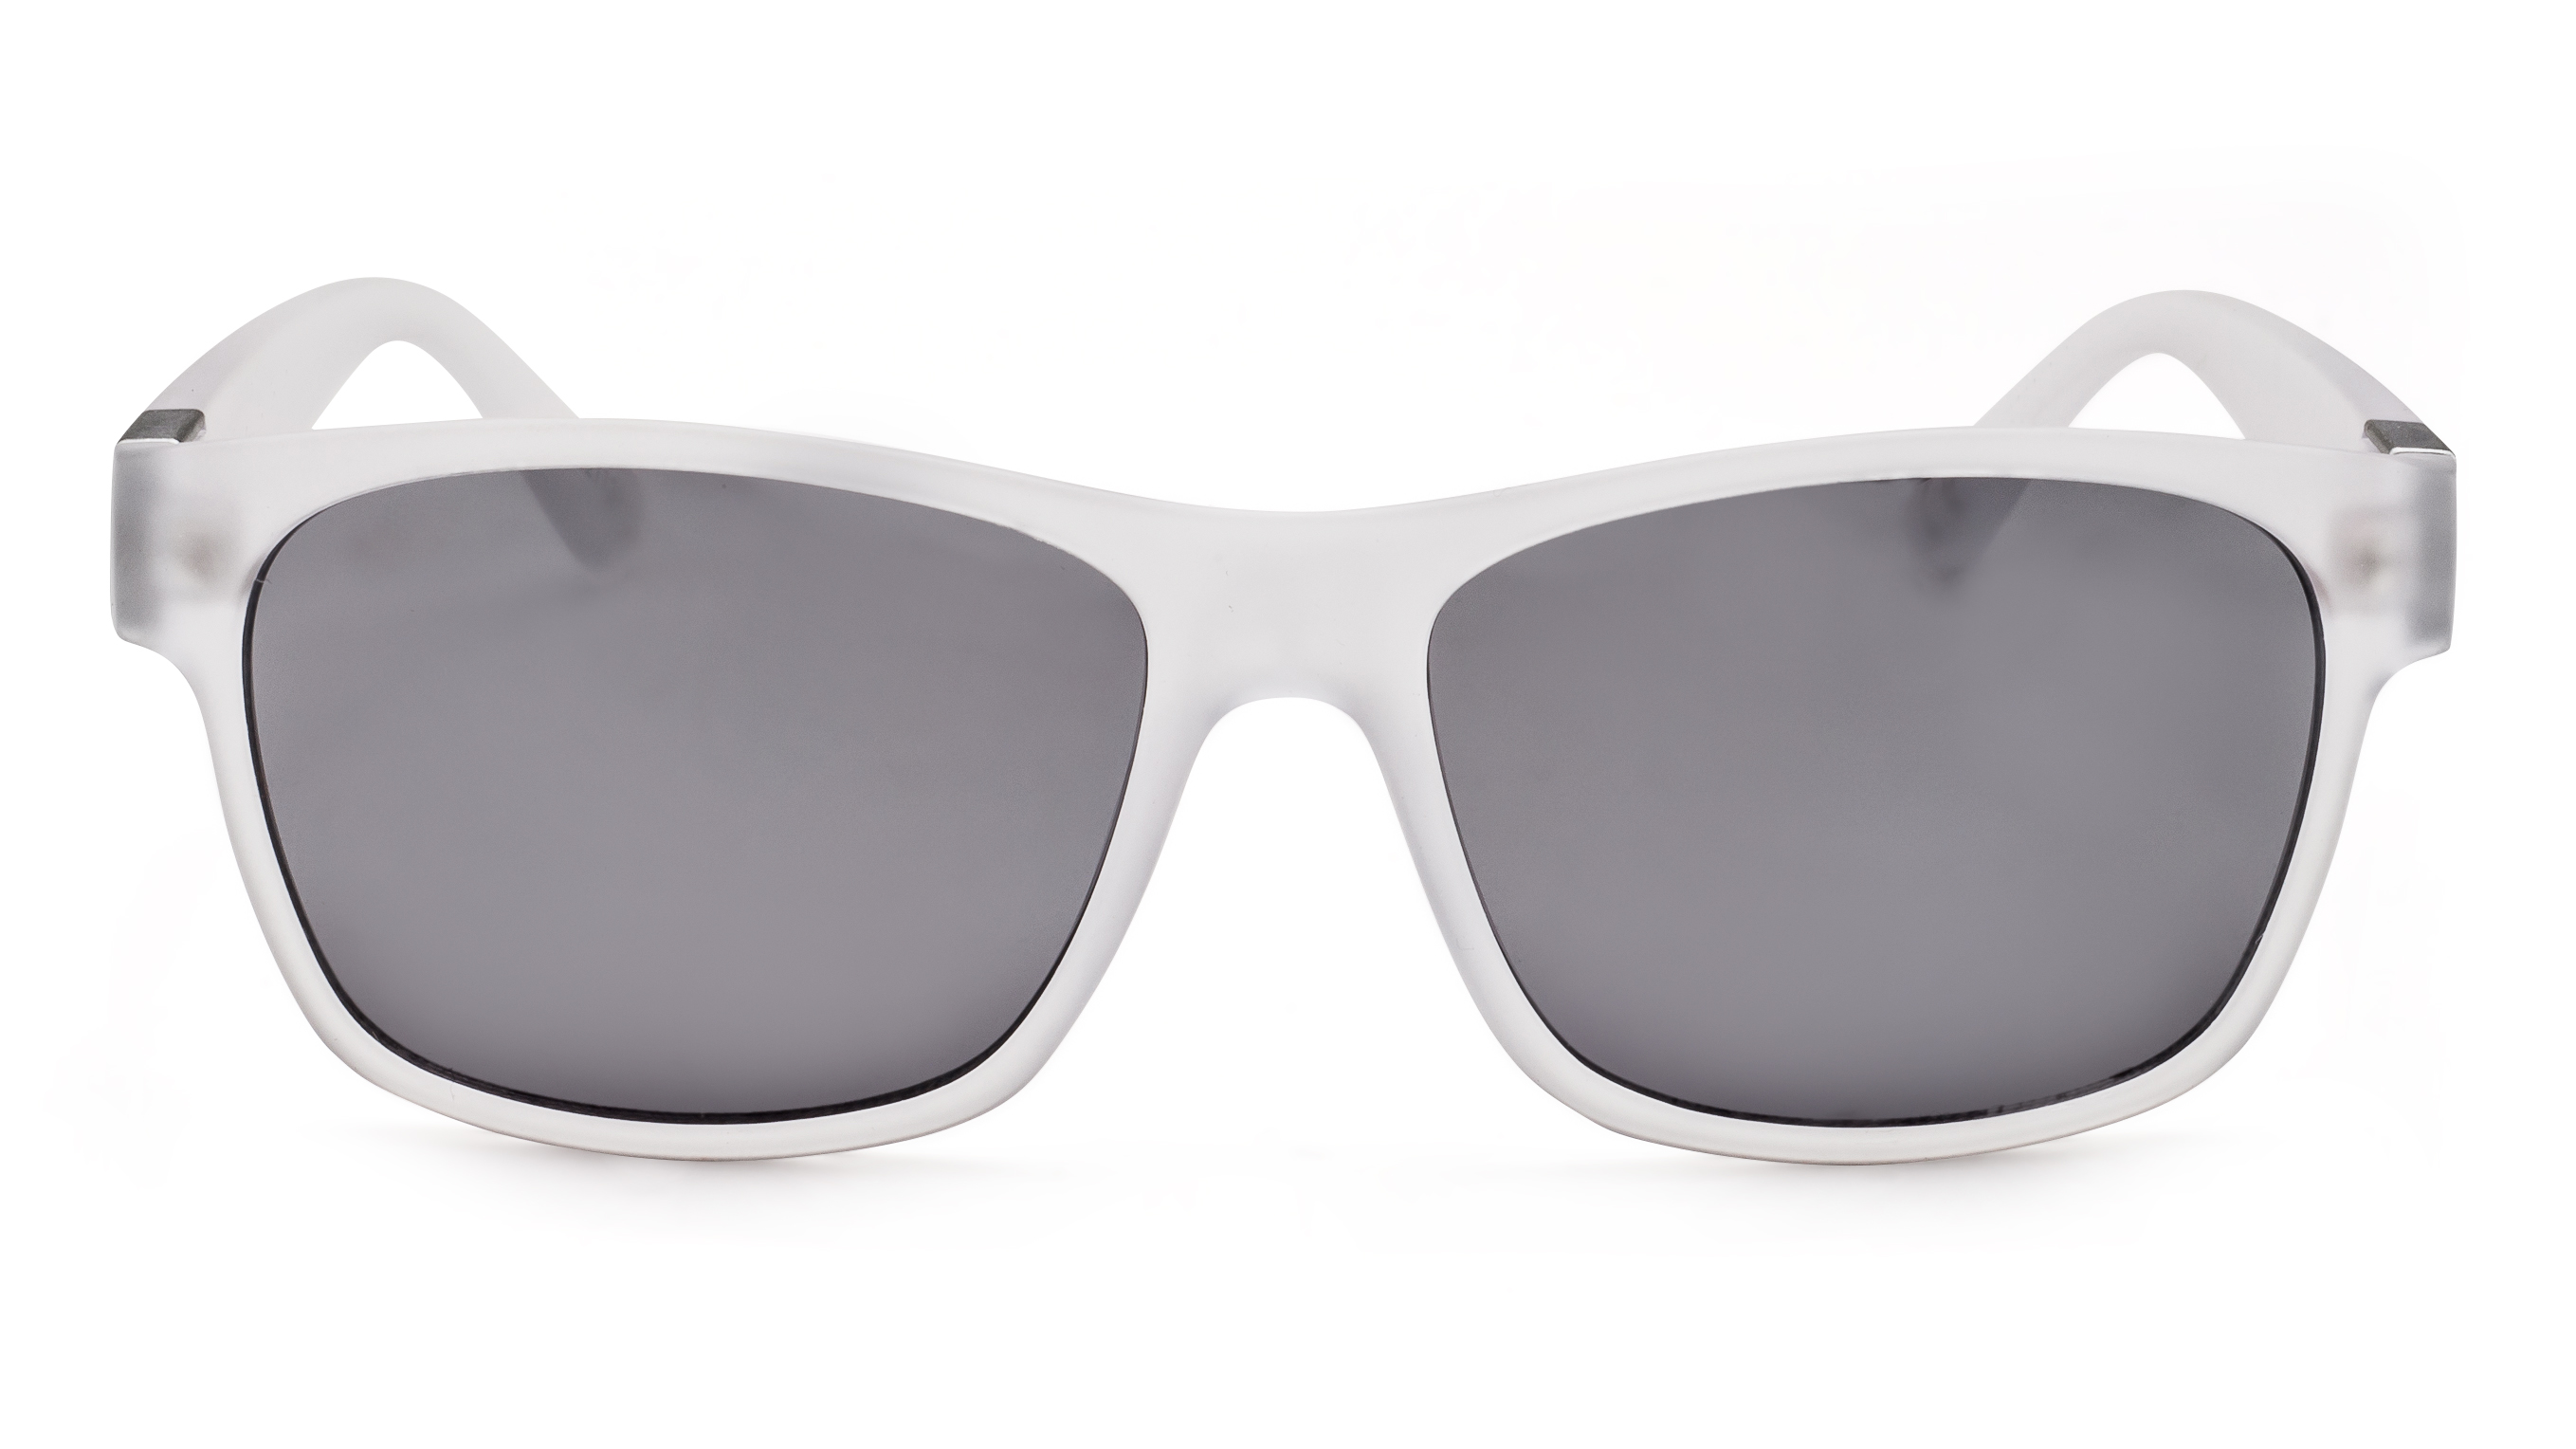 Front view sunglasses 3021139